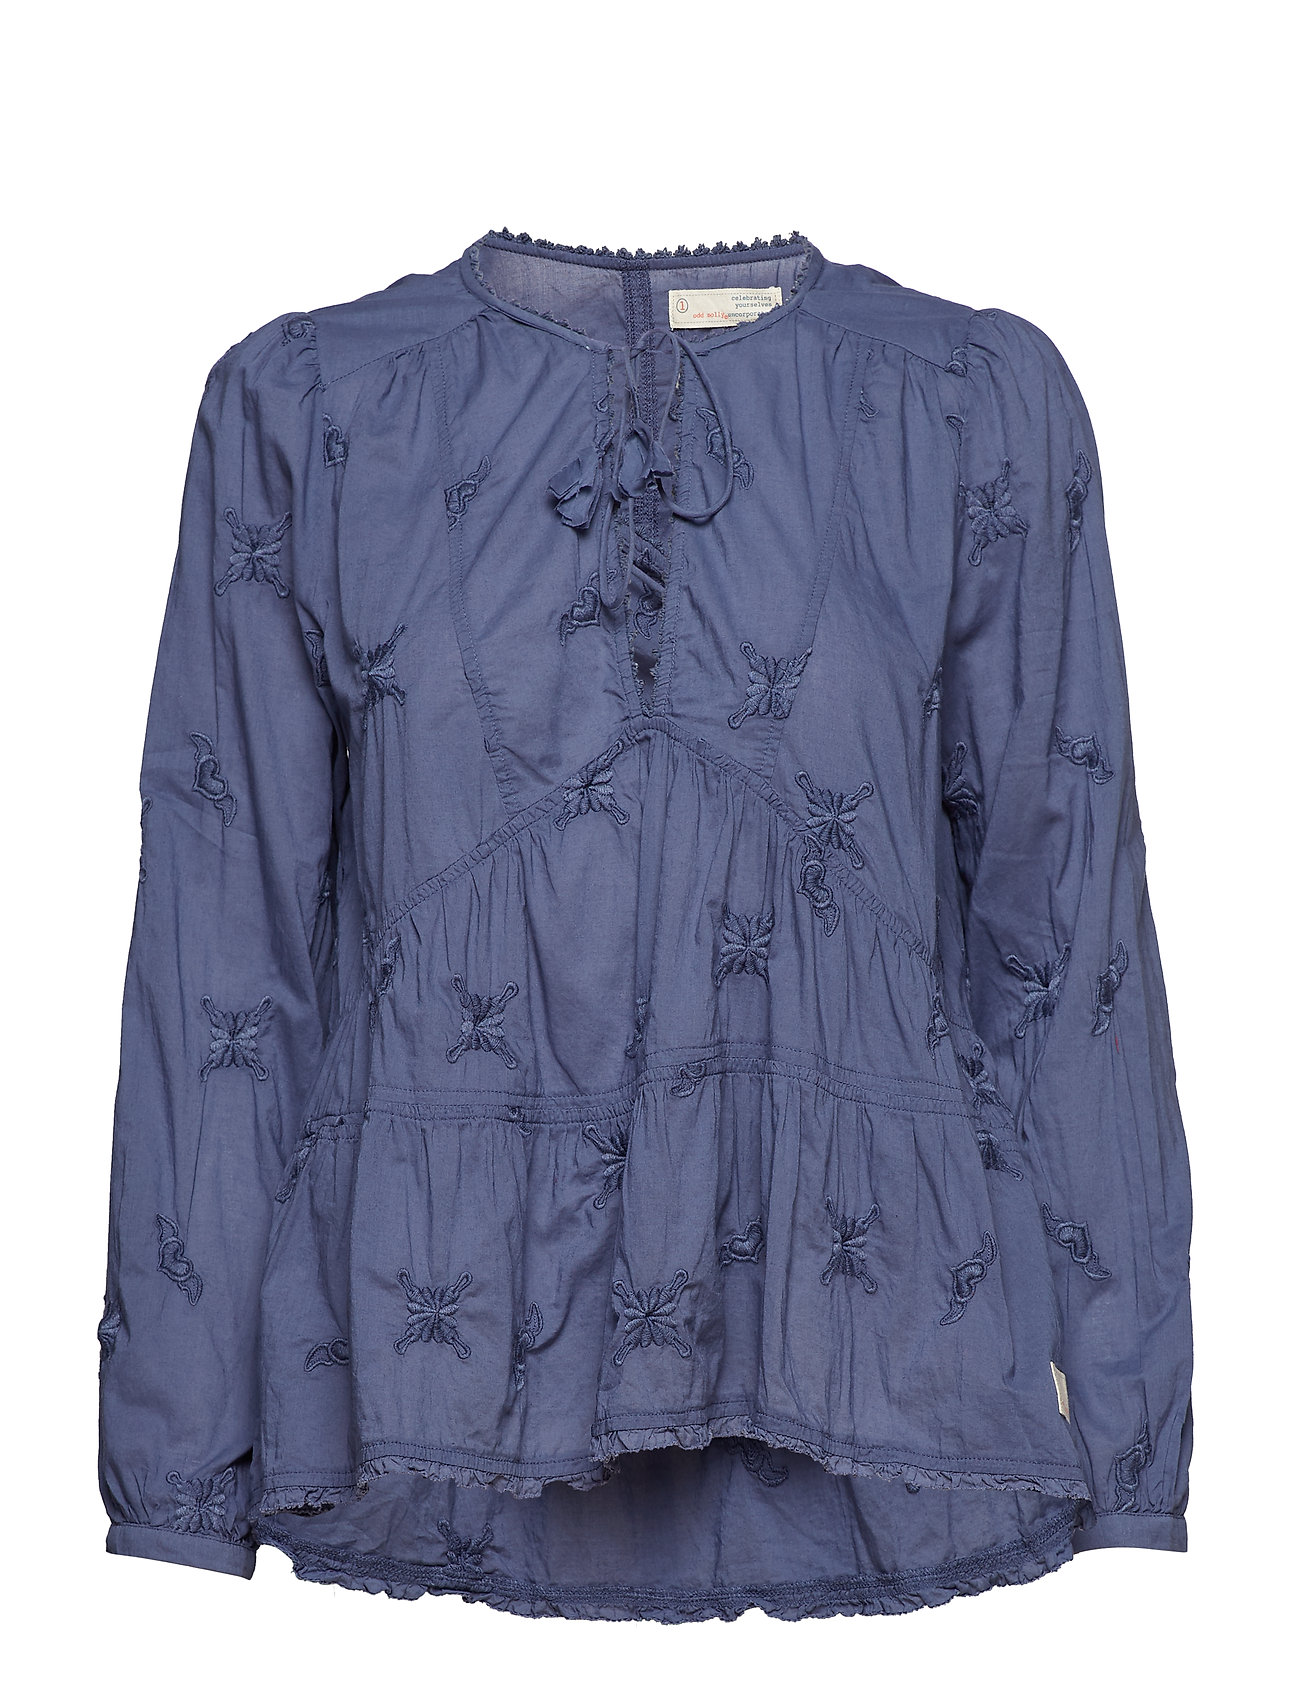 ODD MOLLY sweet symbolism blouse - VINTAGE BLUE